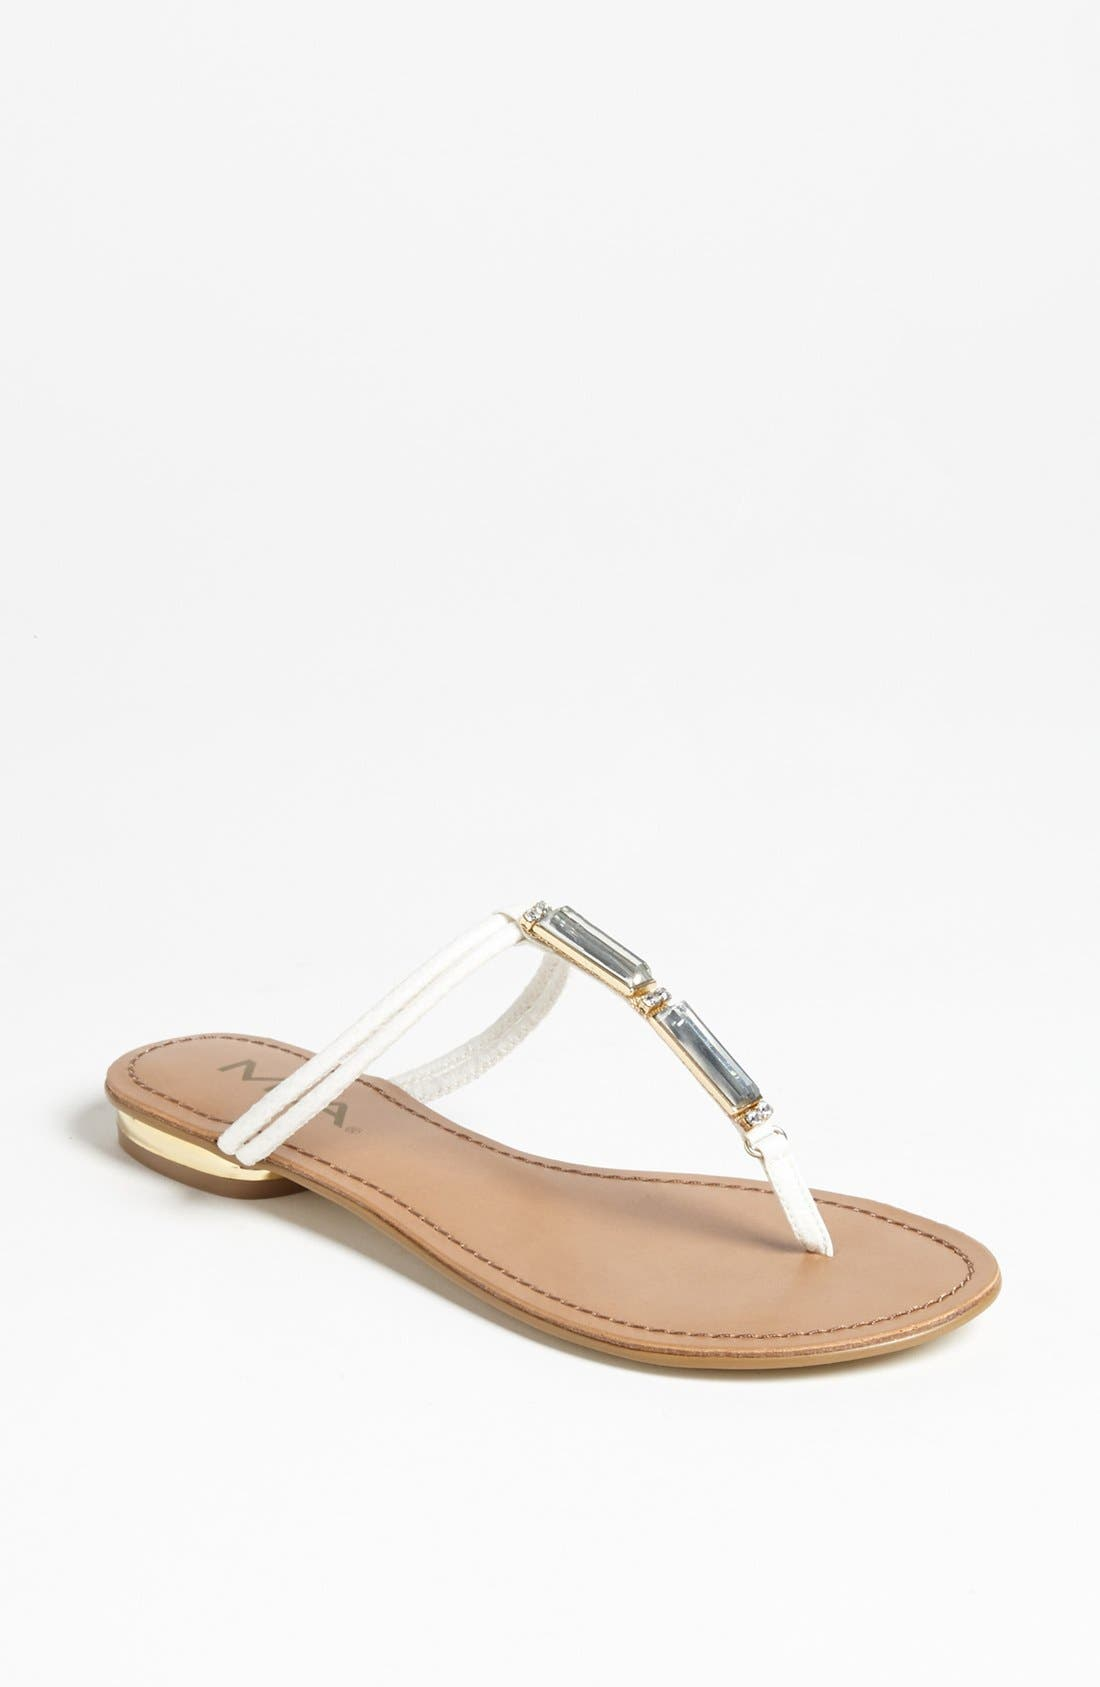 Alternate Image 1 Selected - MIA 'Jimena' Sandal